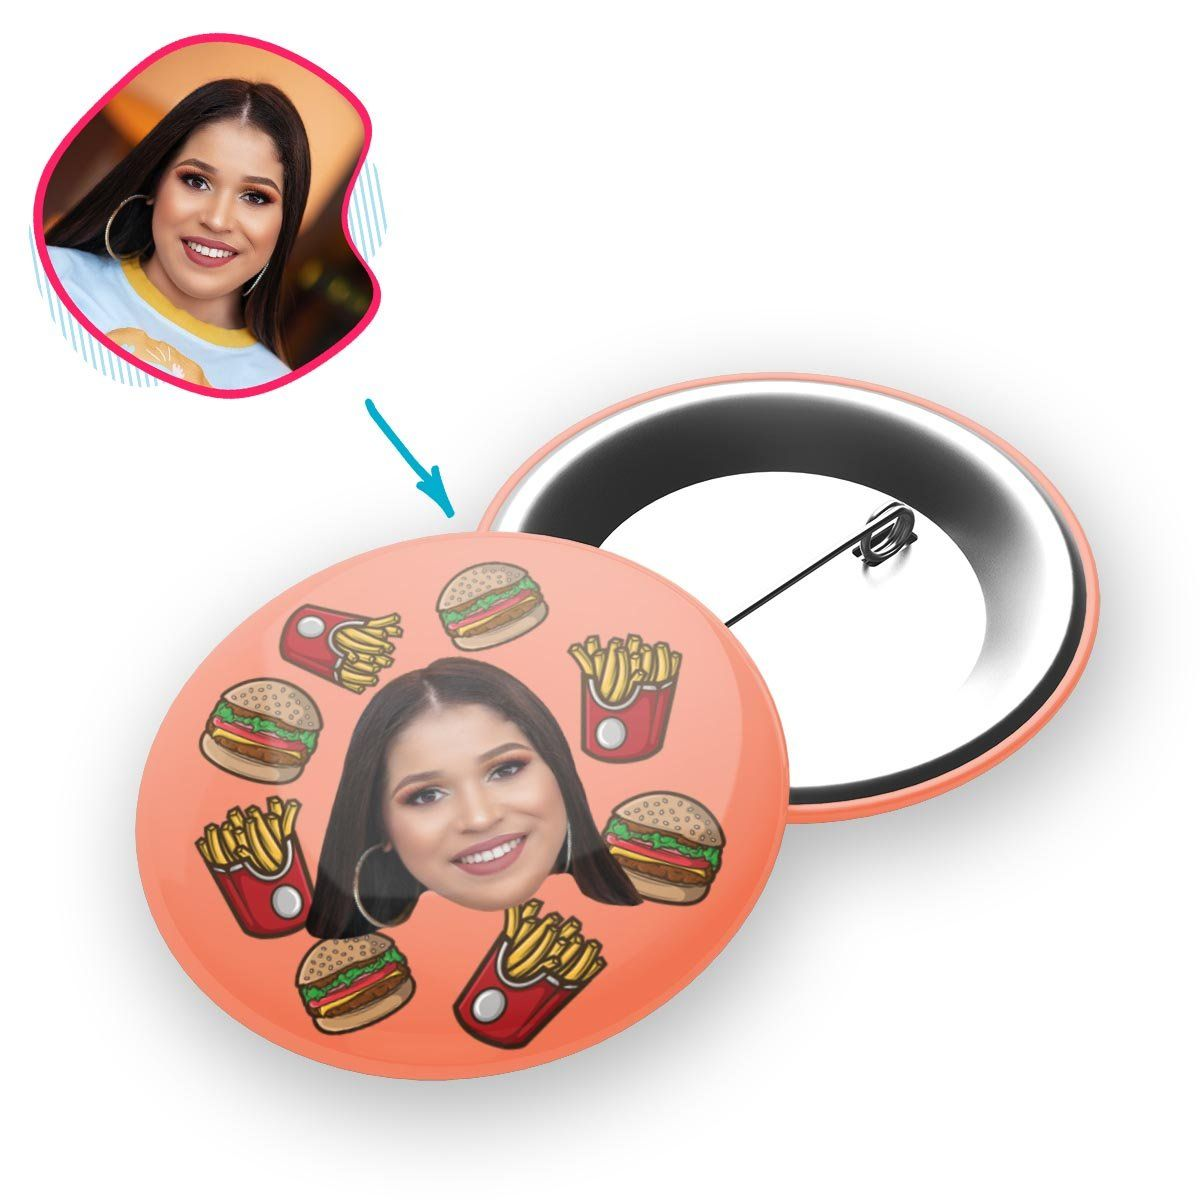 salmon Fastfood pin personalized with photo of face printed on it